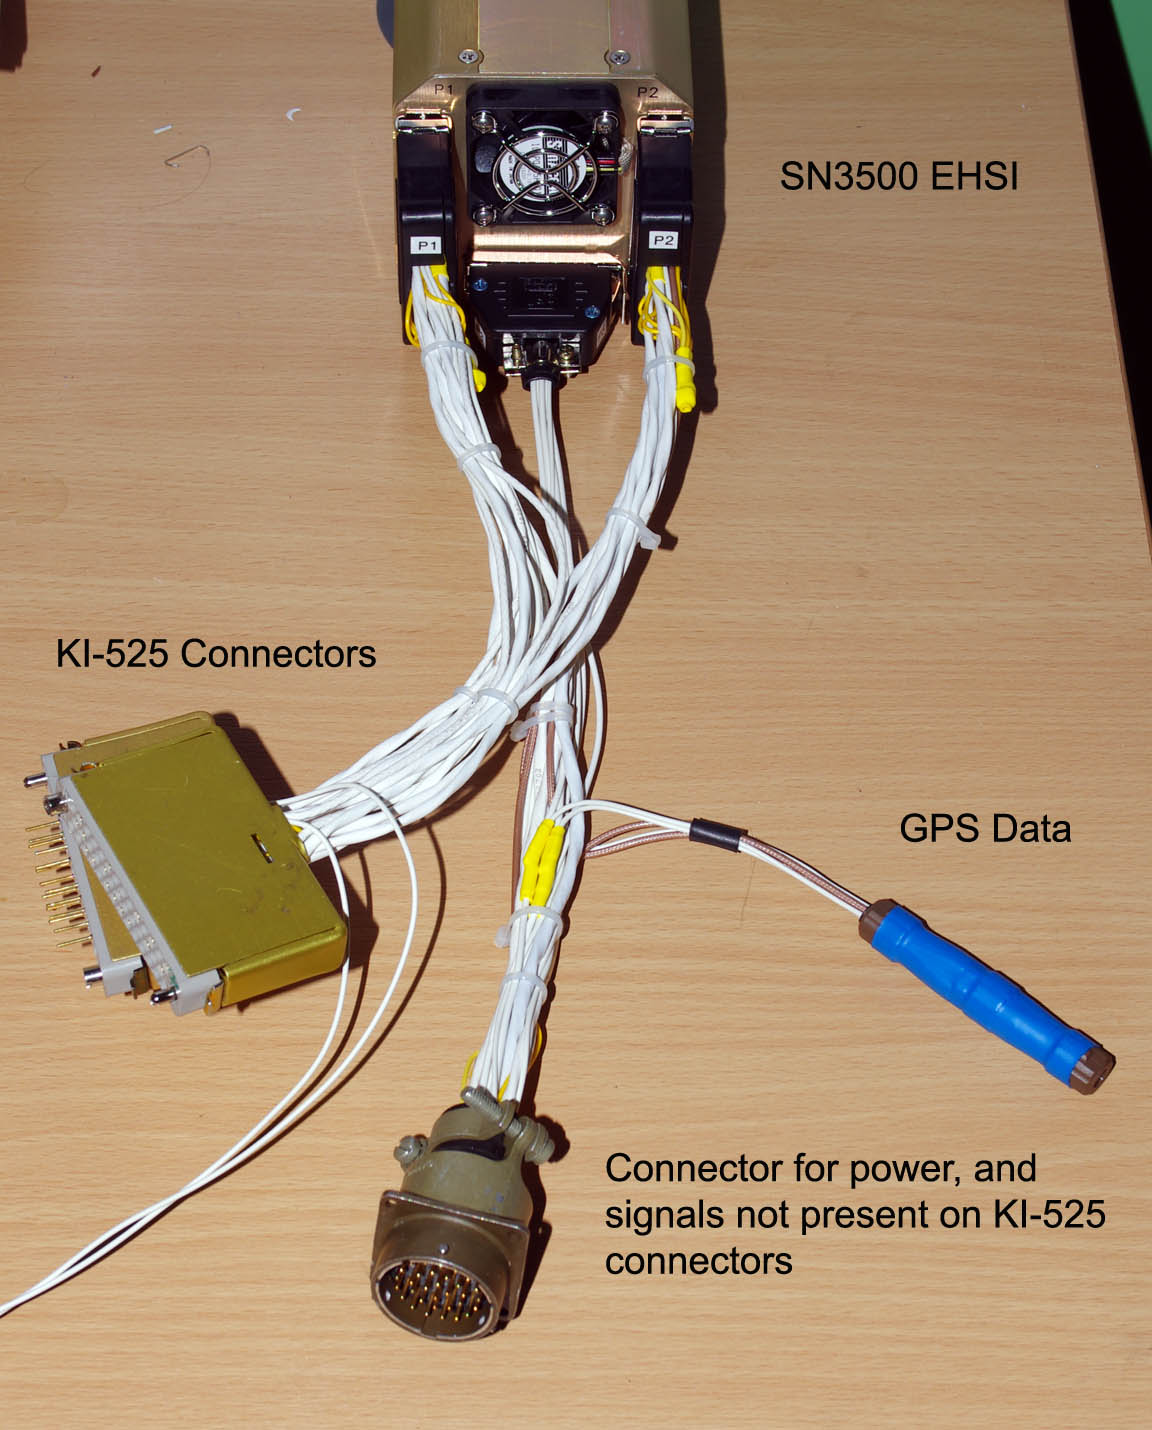 Sandel Sn3500 Ehsi Installation In A Socata Tb20gt Free Download Rg120 Wiring Diagram